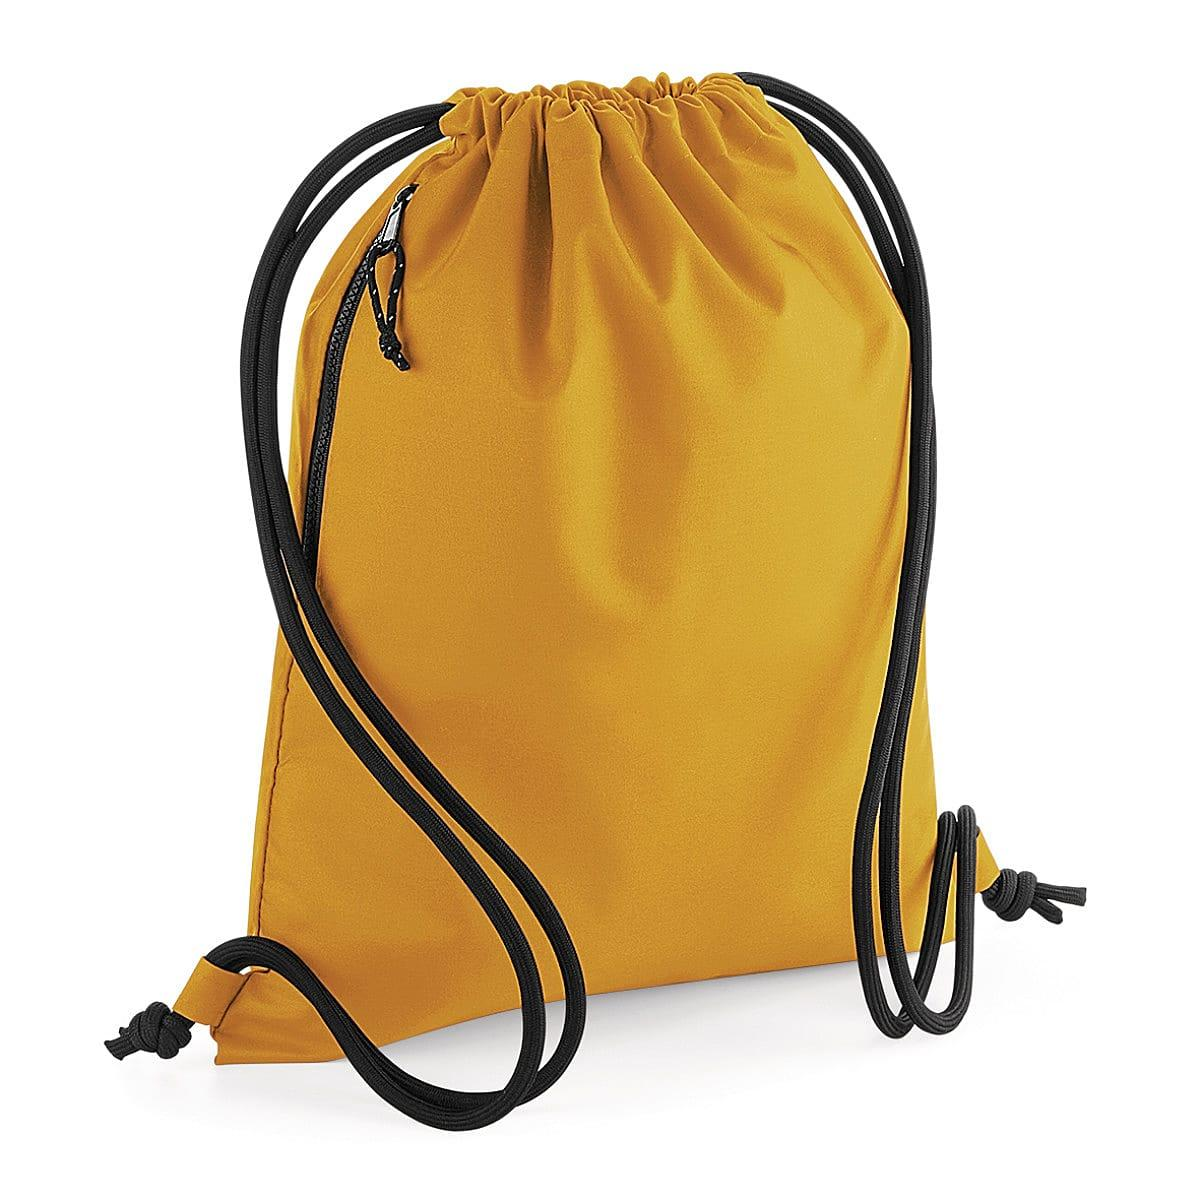 Bagbase Recycled Gymsac in Mustard (Product Code: BG281)